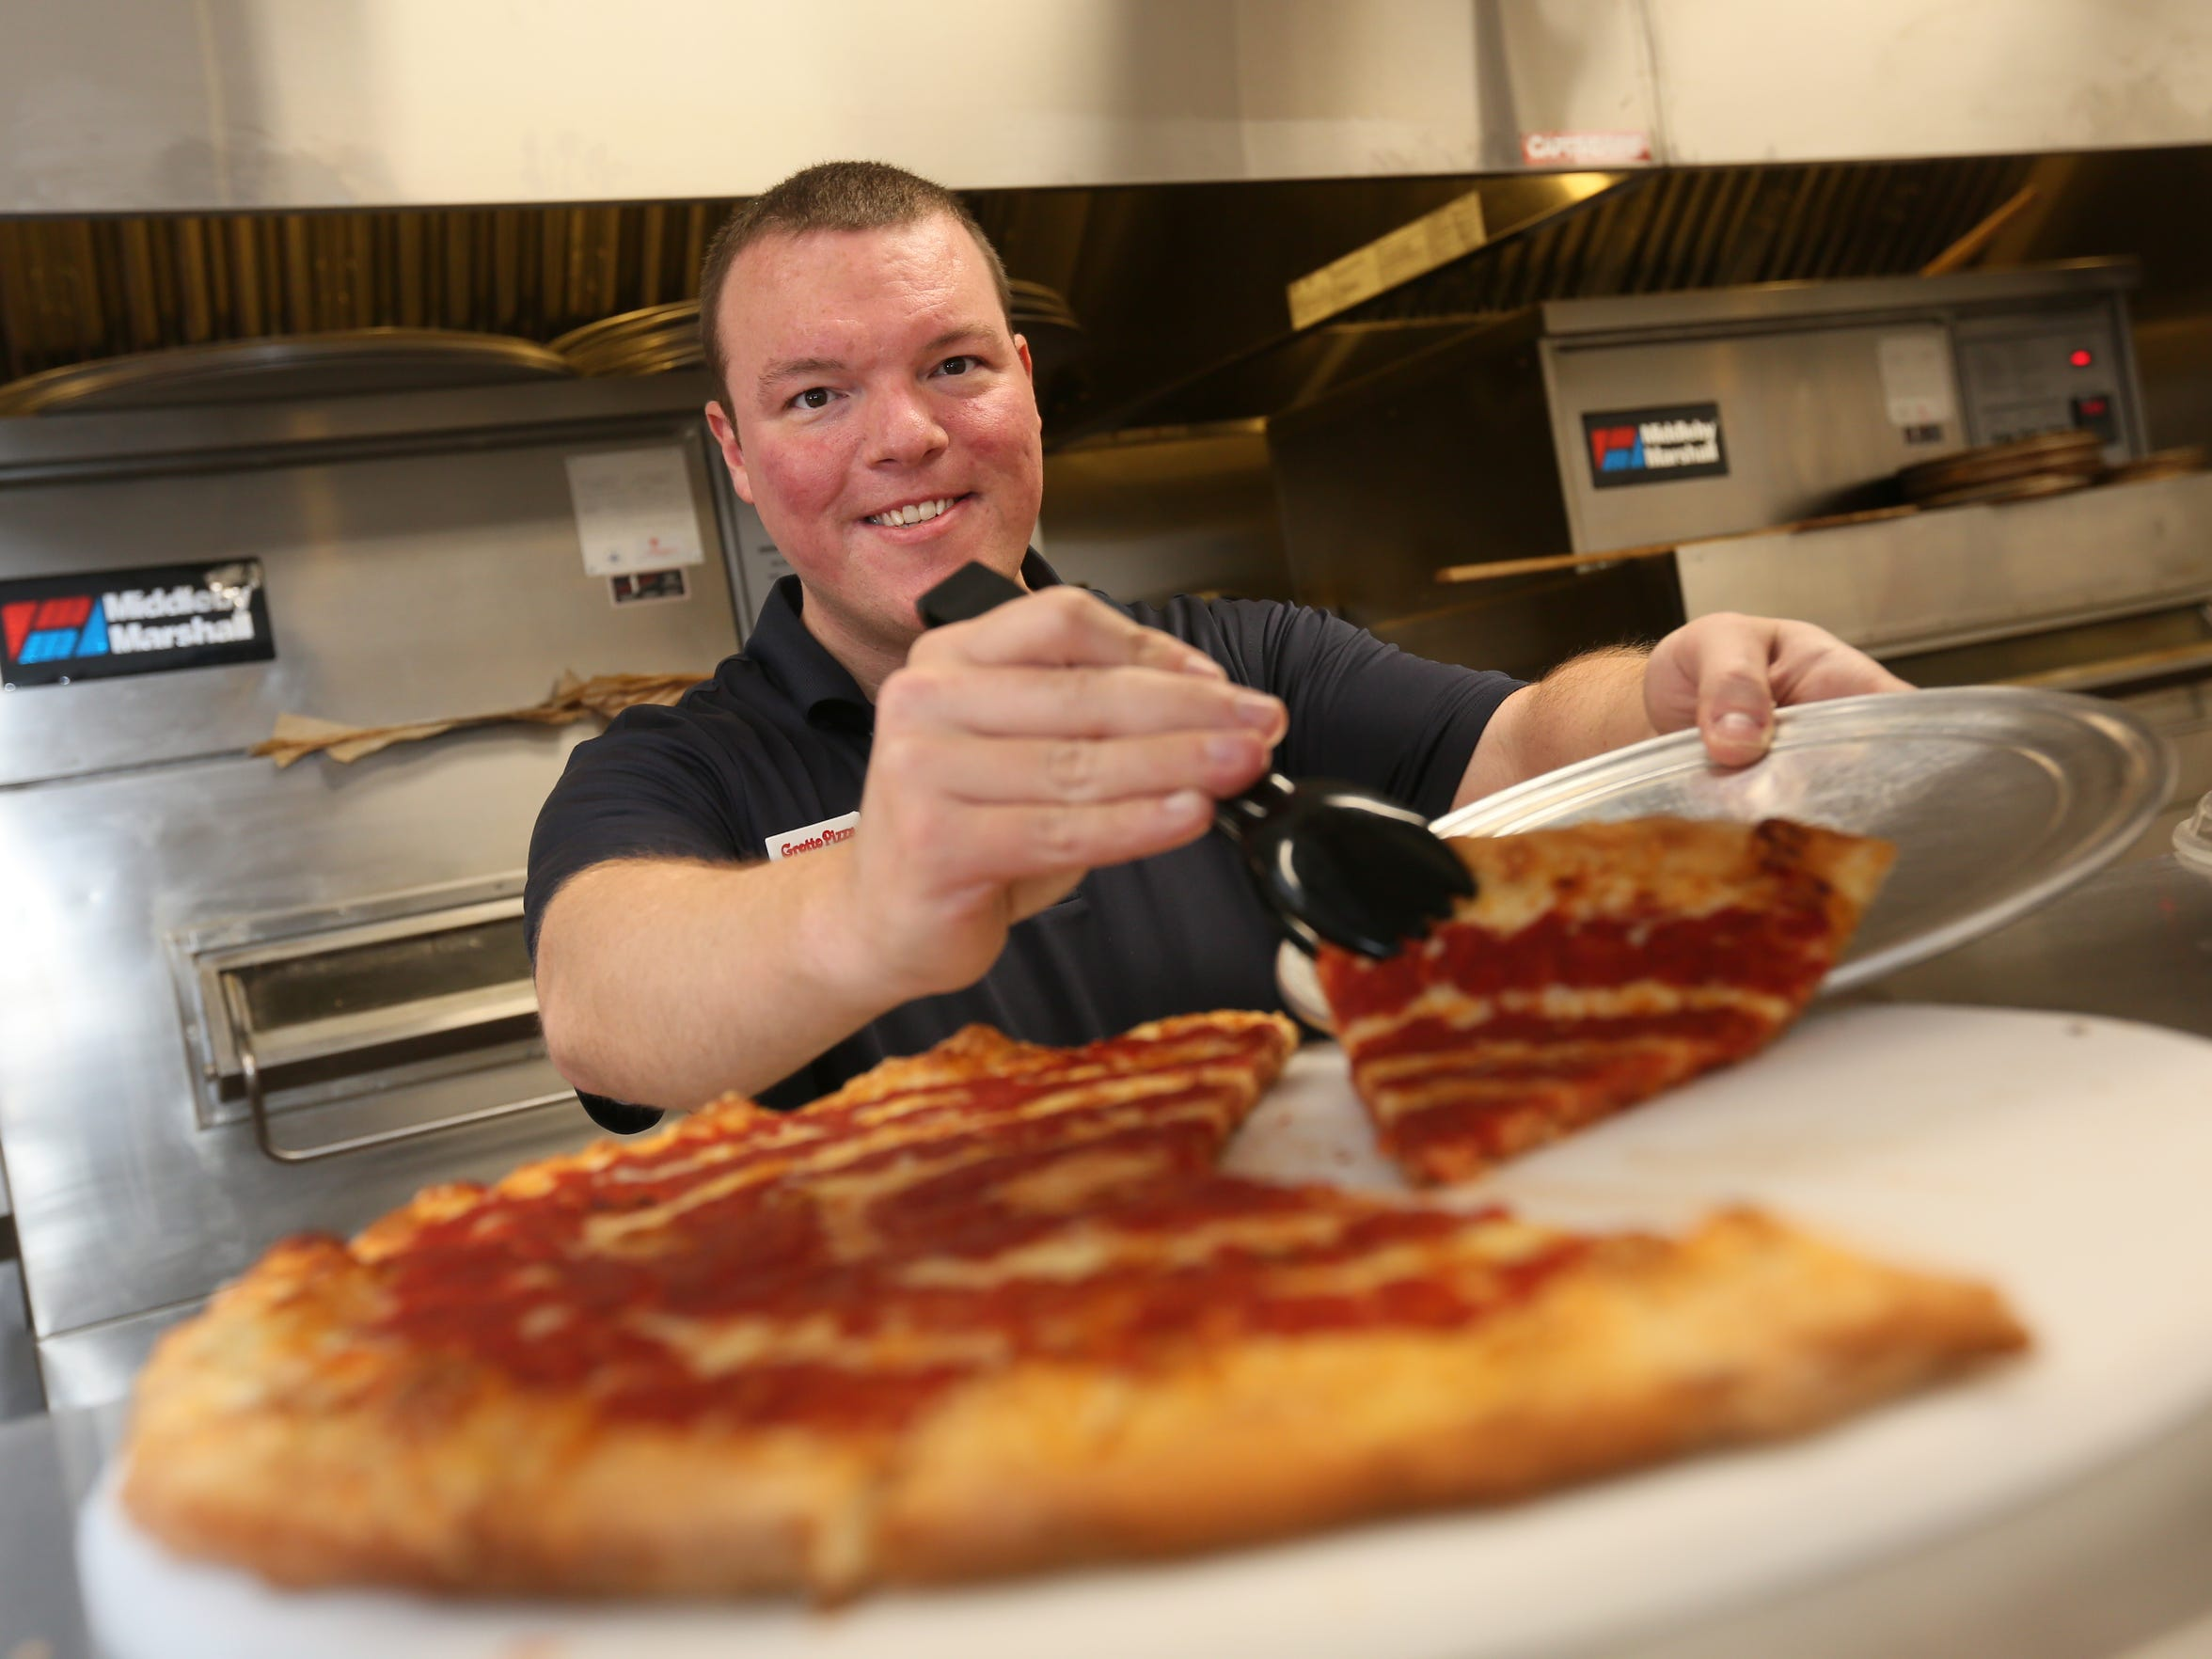 Jordan Whaley, a 33-year-old assistant manager for Grotto Pizza in Middletown, averages about 50 hours a week. Grotto Pizza and other businesses are facing some tough choices about how to handle middle managers in light of the Obama administration's new overtime rules.